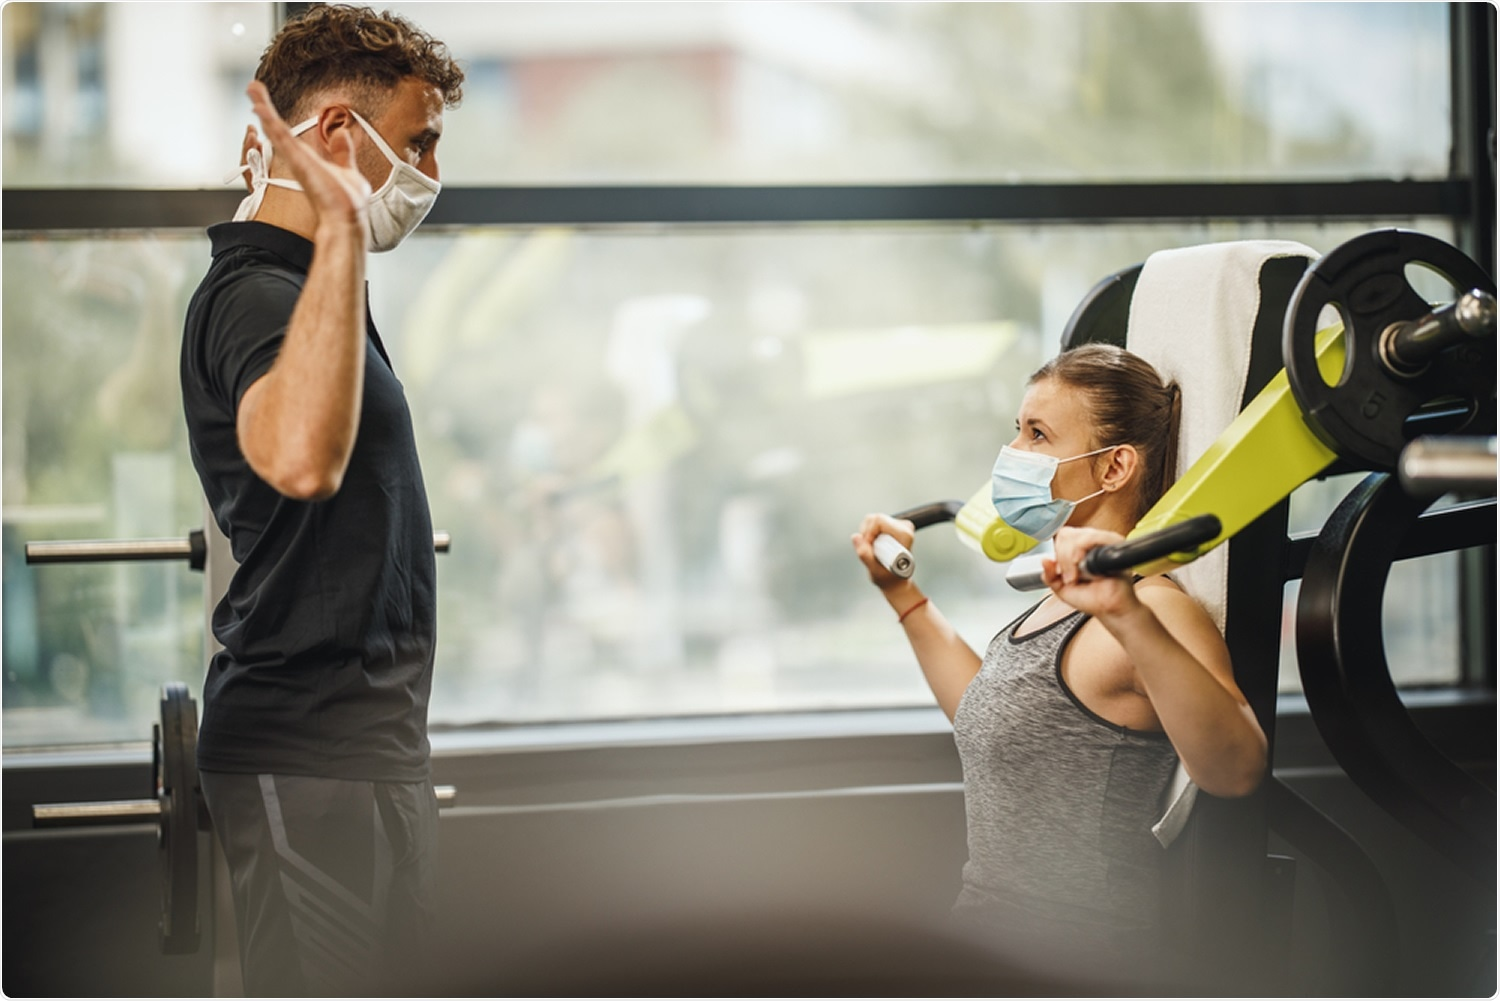 Study: A cross-sectional study of the relationship between exercise, physical activity, and health-related quality of life among Japanese workers during the COVID-19 pandemic. Image Credit: MilanMarkovic78